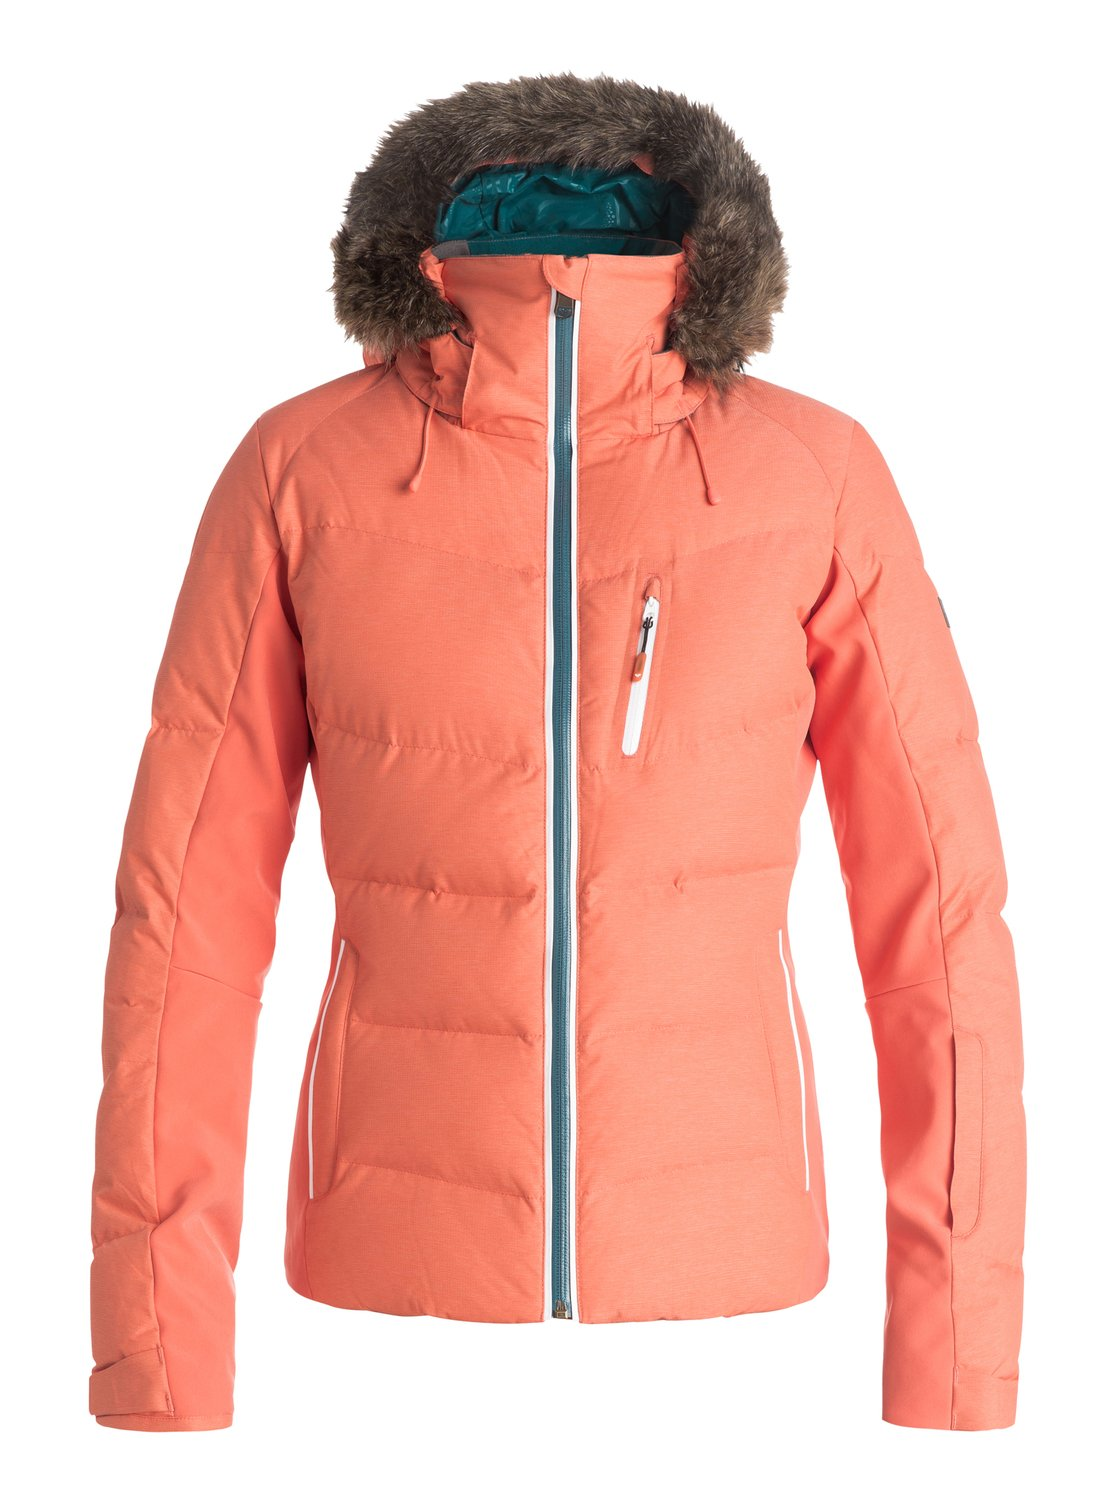 Утепленная сноубордическая куртка SnowstormThe Snowstorms secret to unbeatable warmth lies in its 600 fill-power real down quilting and high performance 15K waterproof shell. Its feminine slim fit is complemented by sporty stretch panels on the side for comfort and ease of movement and cosy removable fur on the hood. Contrast pop detailing ensures standout style while the DryFlight® waterproof technology offers excellent wet weather protection. A 3-way adjustable hood, Lycra wrist gaiters with thumbhole, ultra-lightweight embossed taffeta lining supply the freeride-friendly features you need to conquer the mountain, while the ROXY X Biotherm® Enjoy &amp;amp; Care integrated collar cares for your skin as you hike the ridgeline.<br>